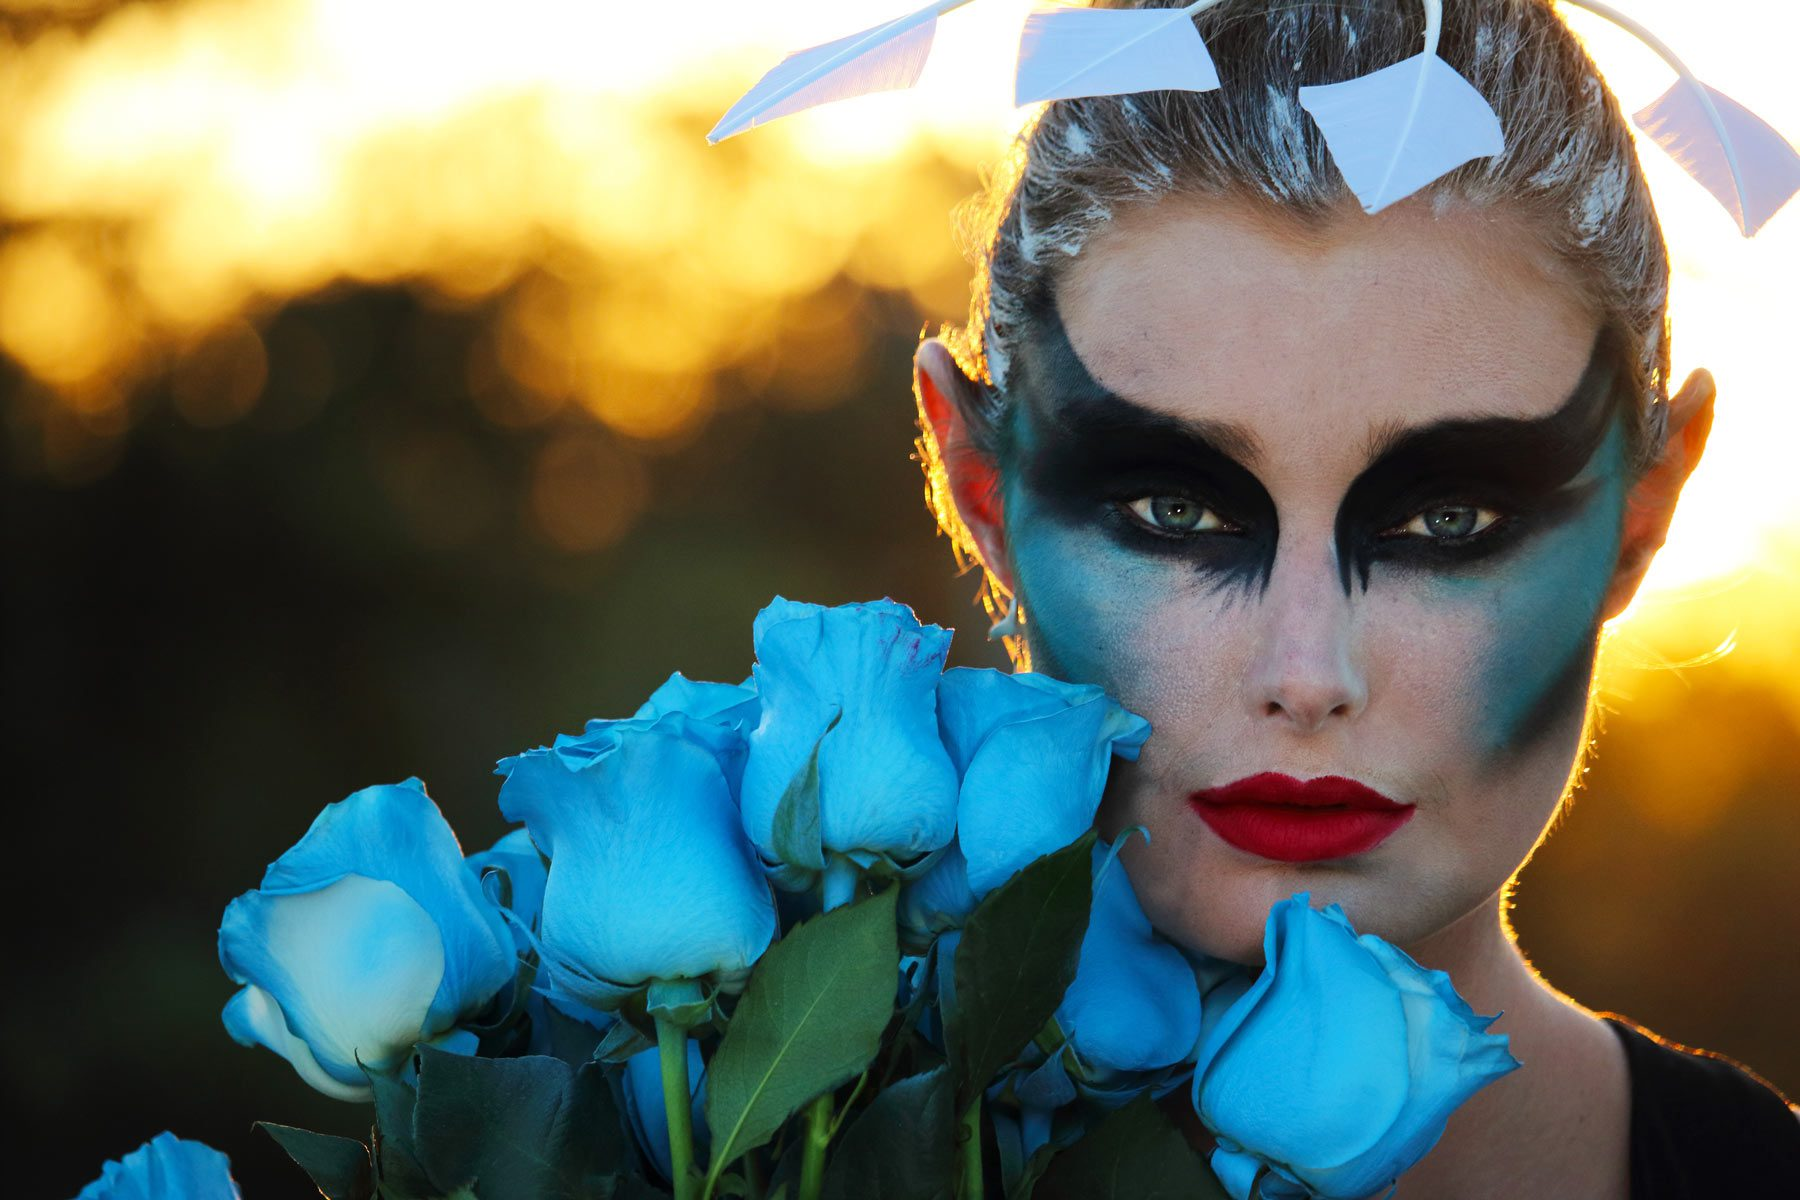 Blue Roses Art Photography